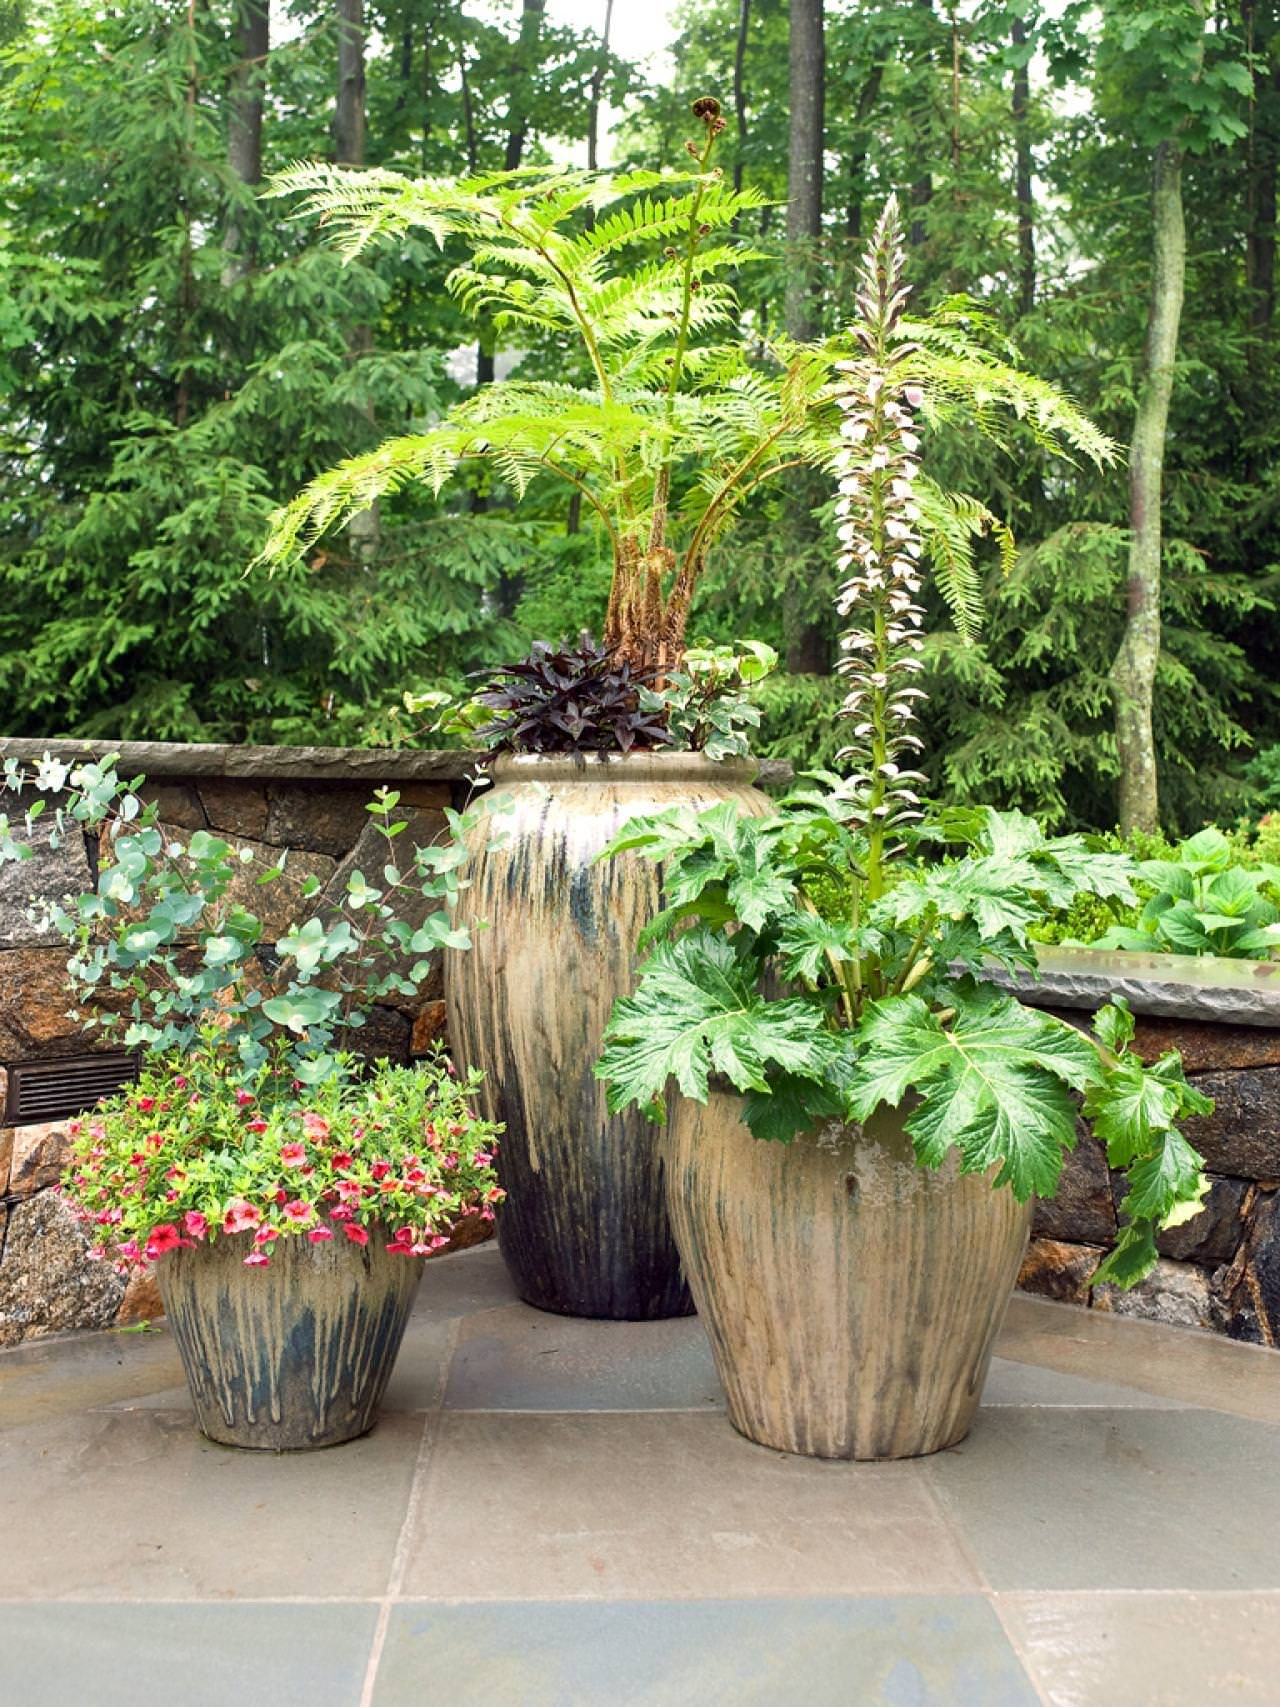 Merveilleux With These 11 Important Container Garden Design Tips, You Can Create A  Beautiful Container Garden Even In A Limited Space